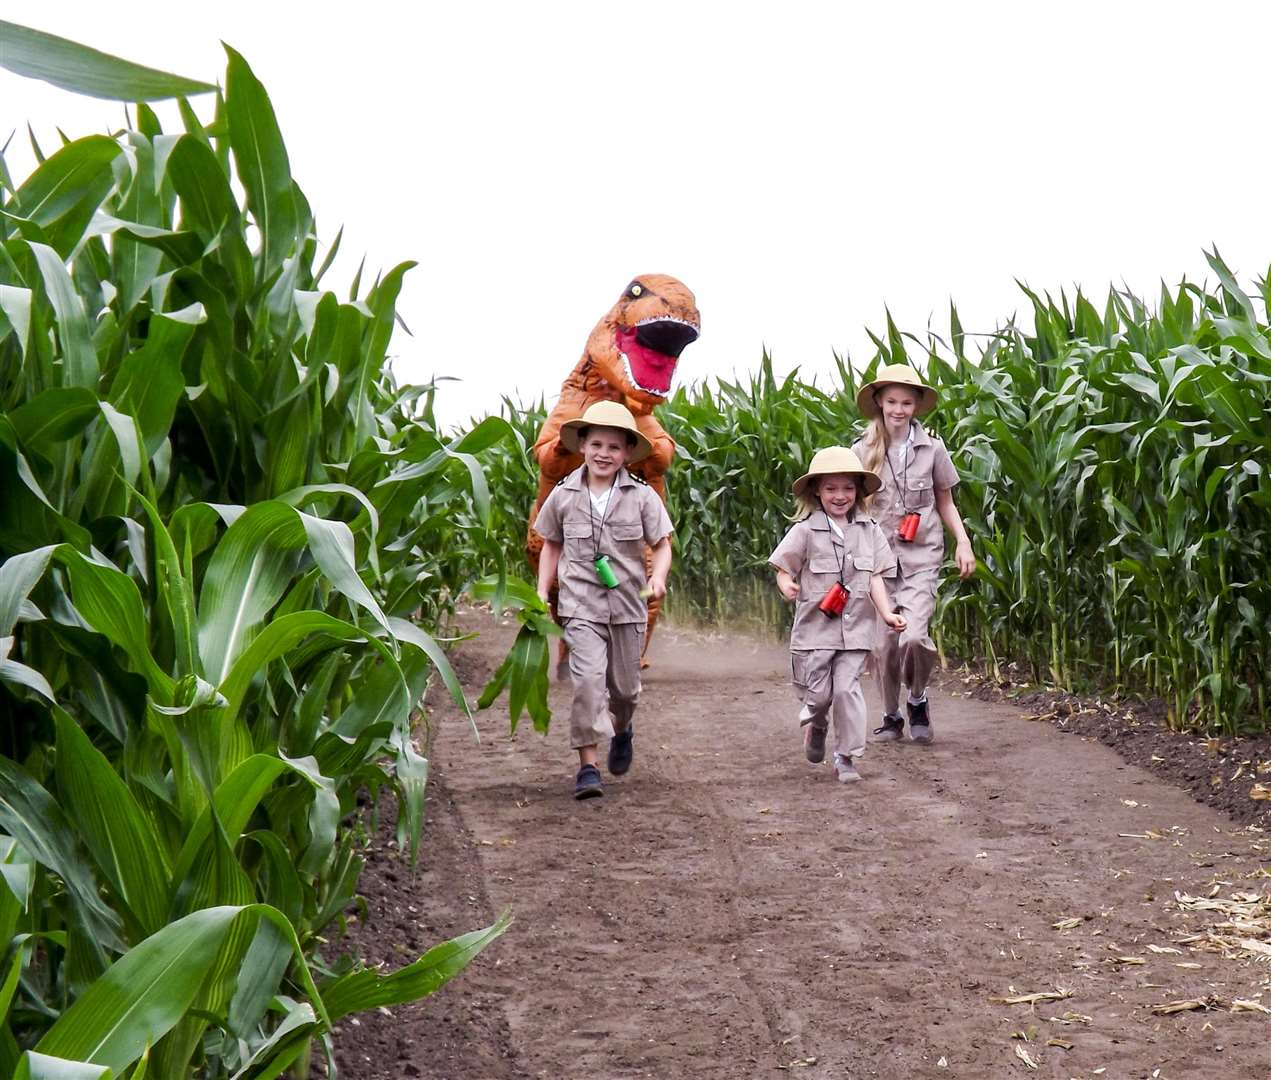 On the look out for dinosaurs in the Skylark maize maze: Annabell Wesley, 11, Owen Askew, 7 and Amelia Hathaway, 6. (3047081)